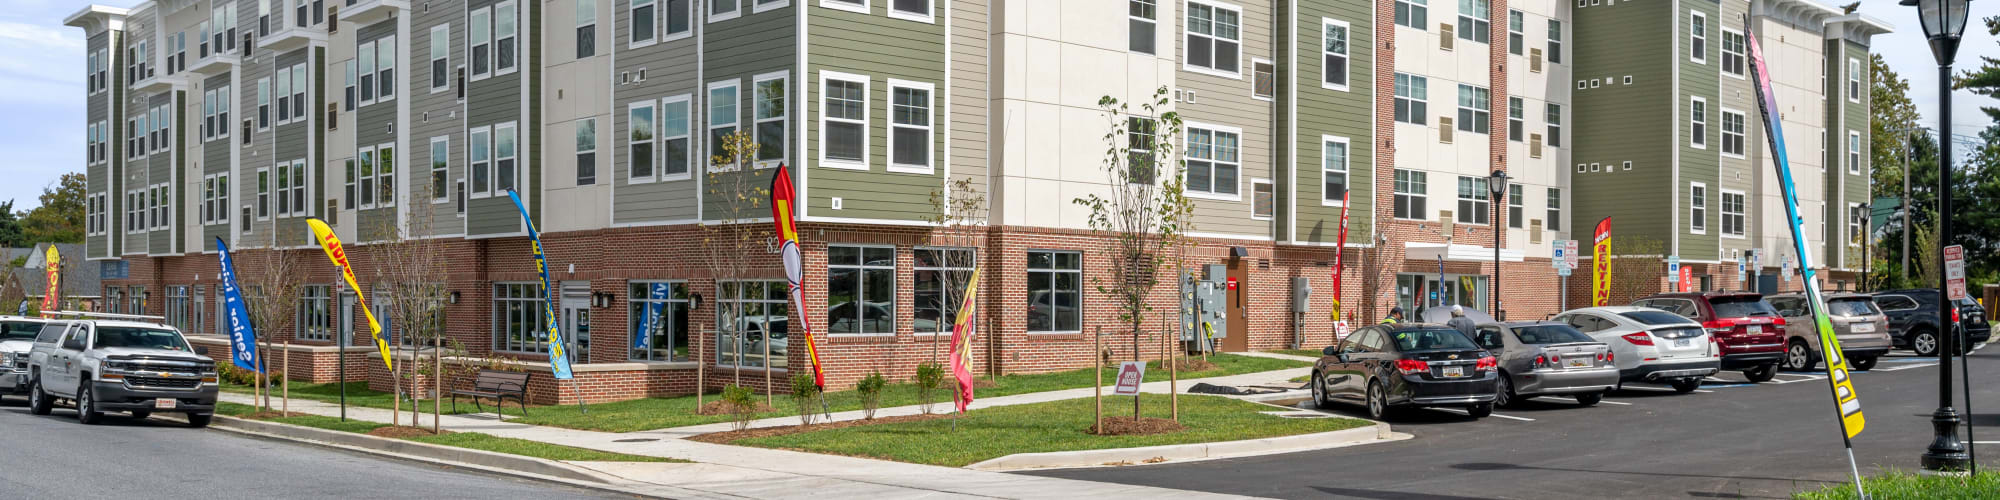 Neighborhood near The Apartments at Sharpe Square in Frederick, Maryland